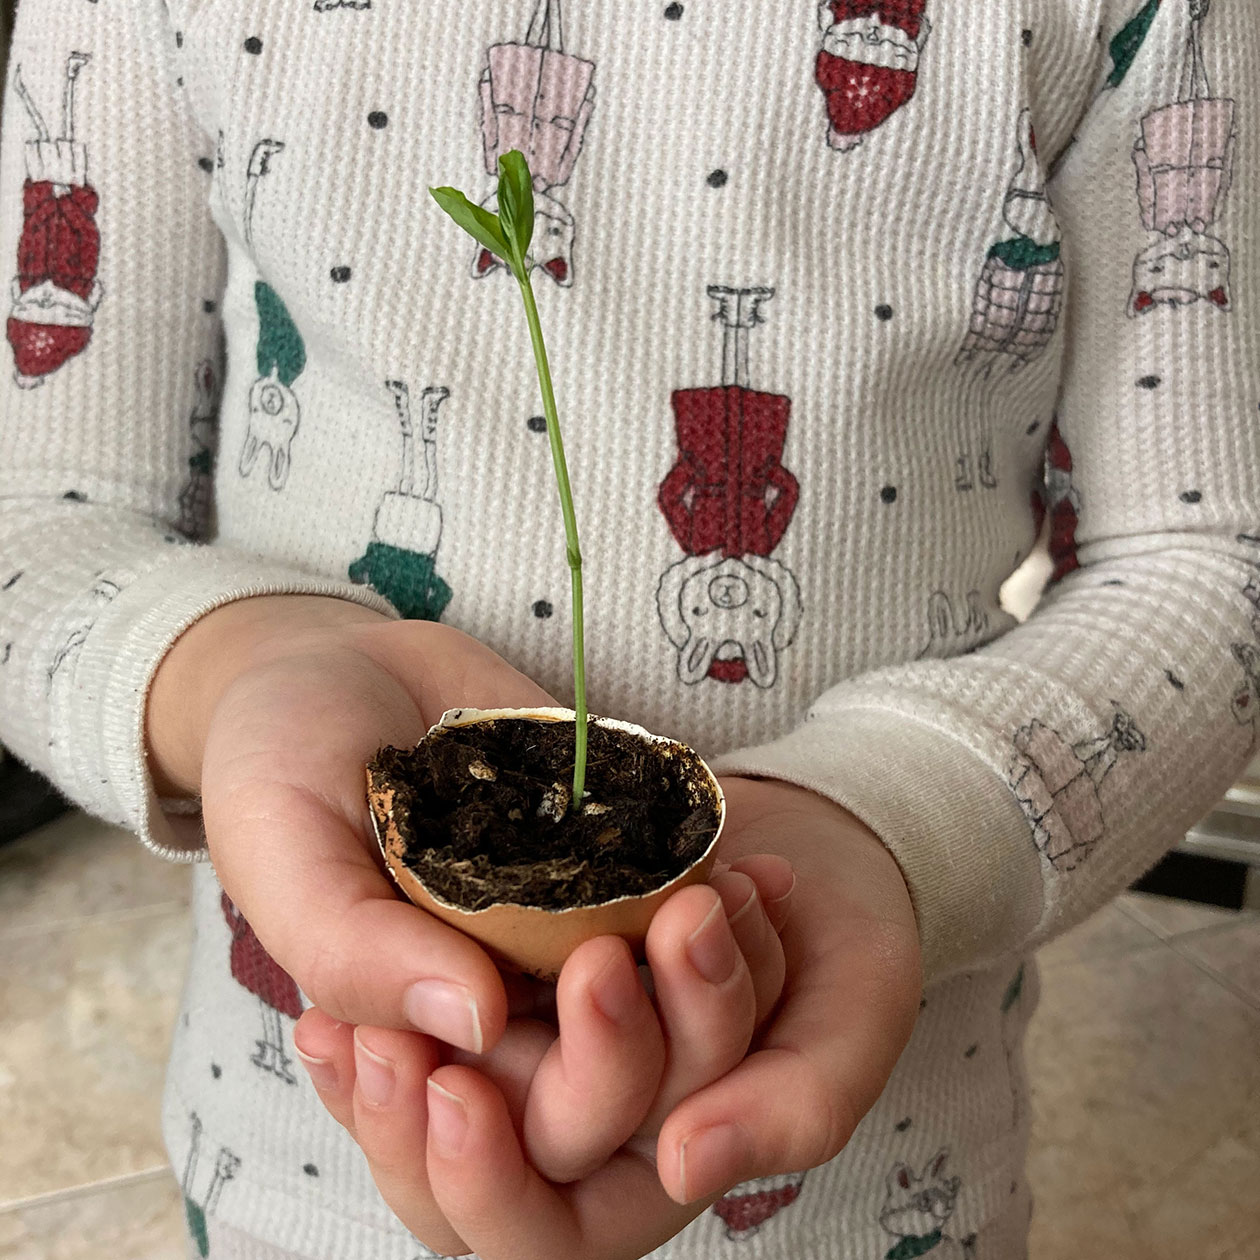 A photo of a person holding a small plant